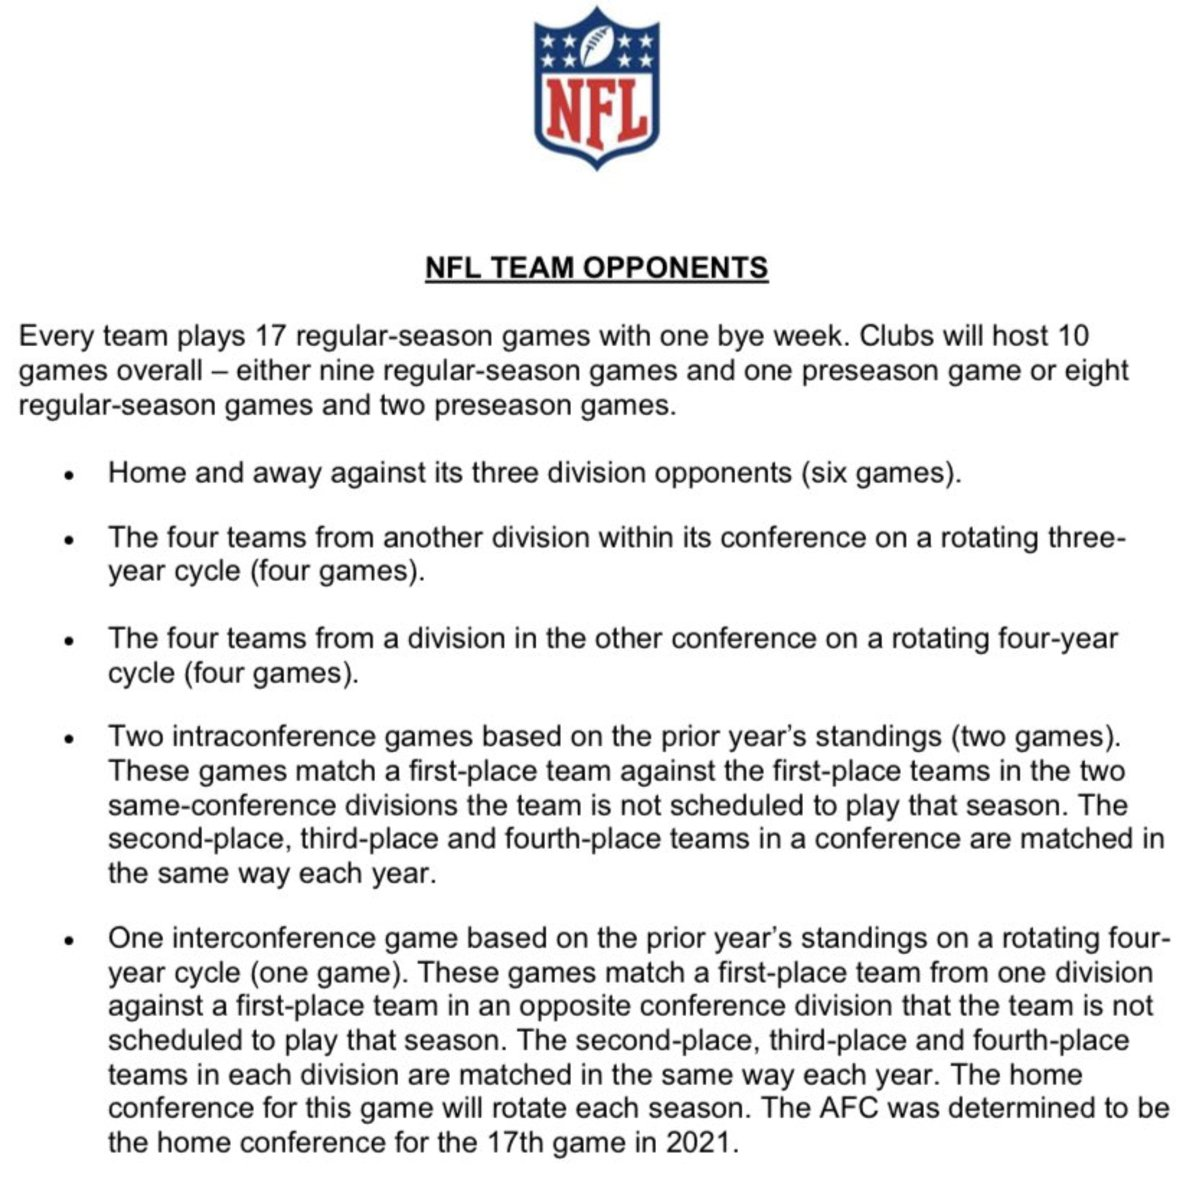 NFL memo sent out to all 32 NFL teams regarding opponents for the 2021 NFL season.